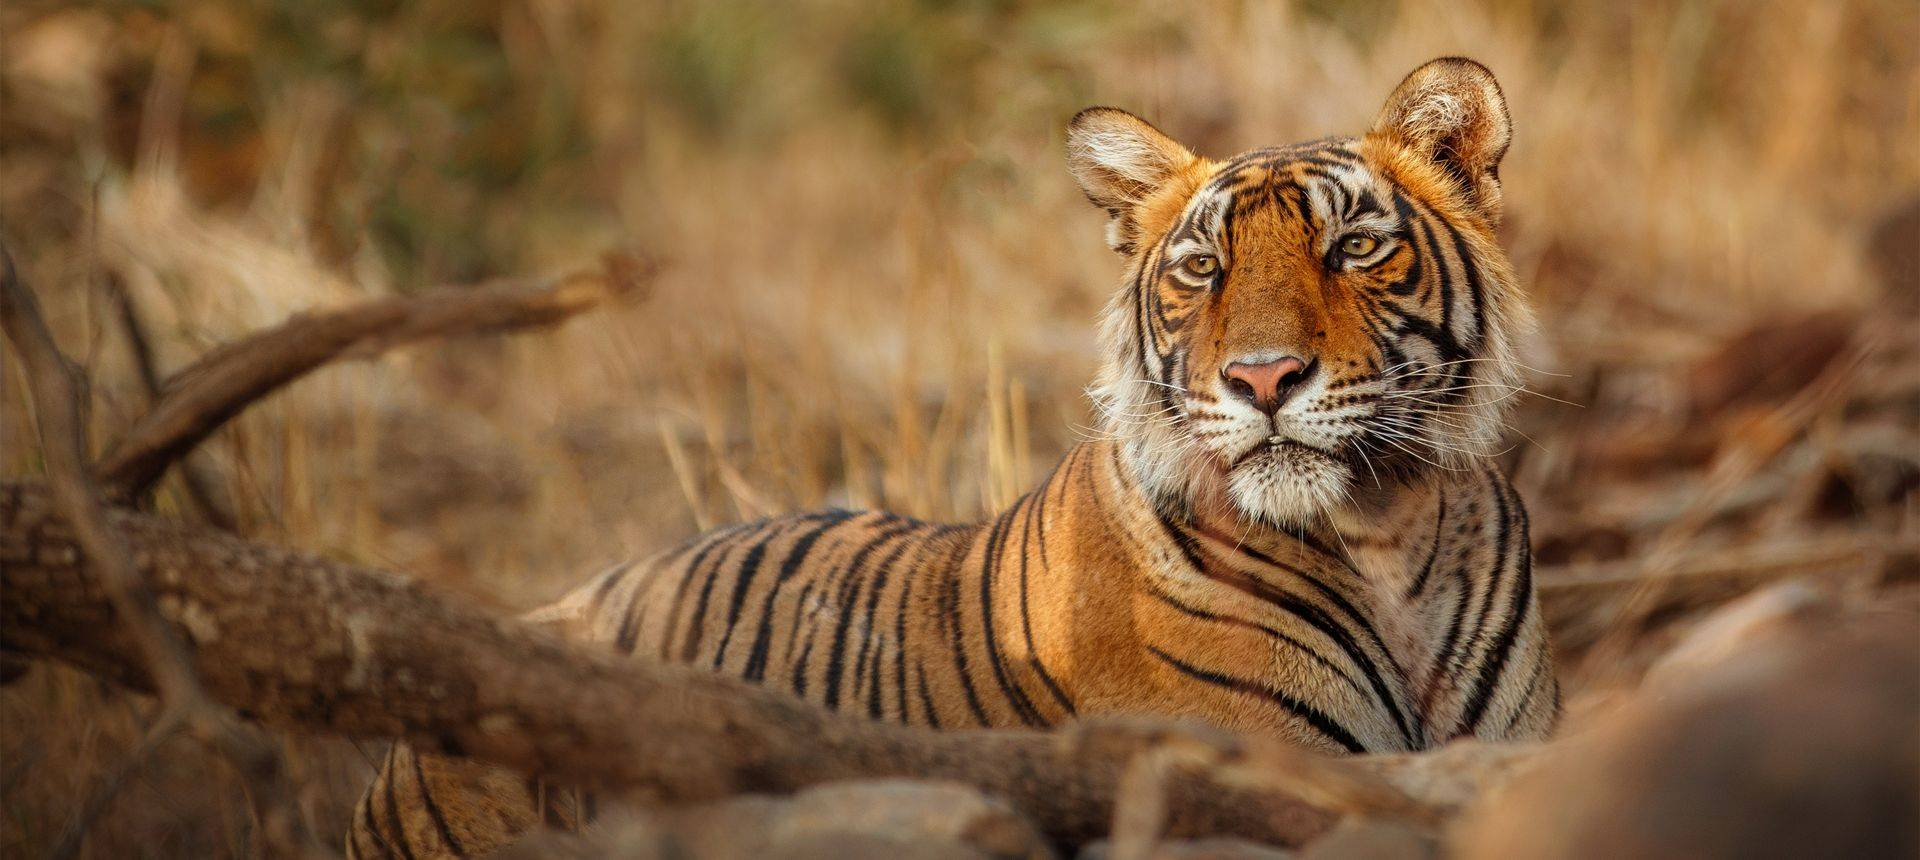 Tiger, India Shutterstock 1095332669